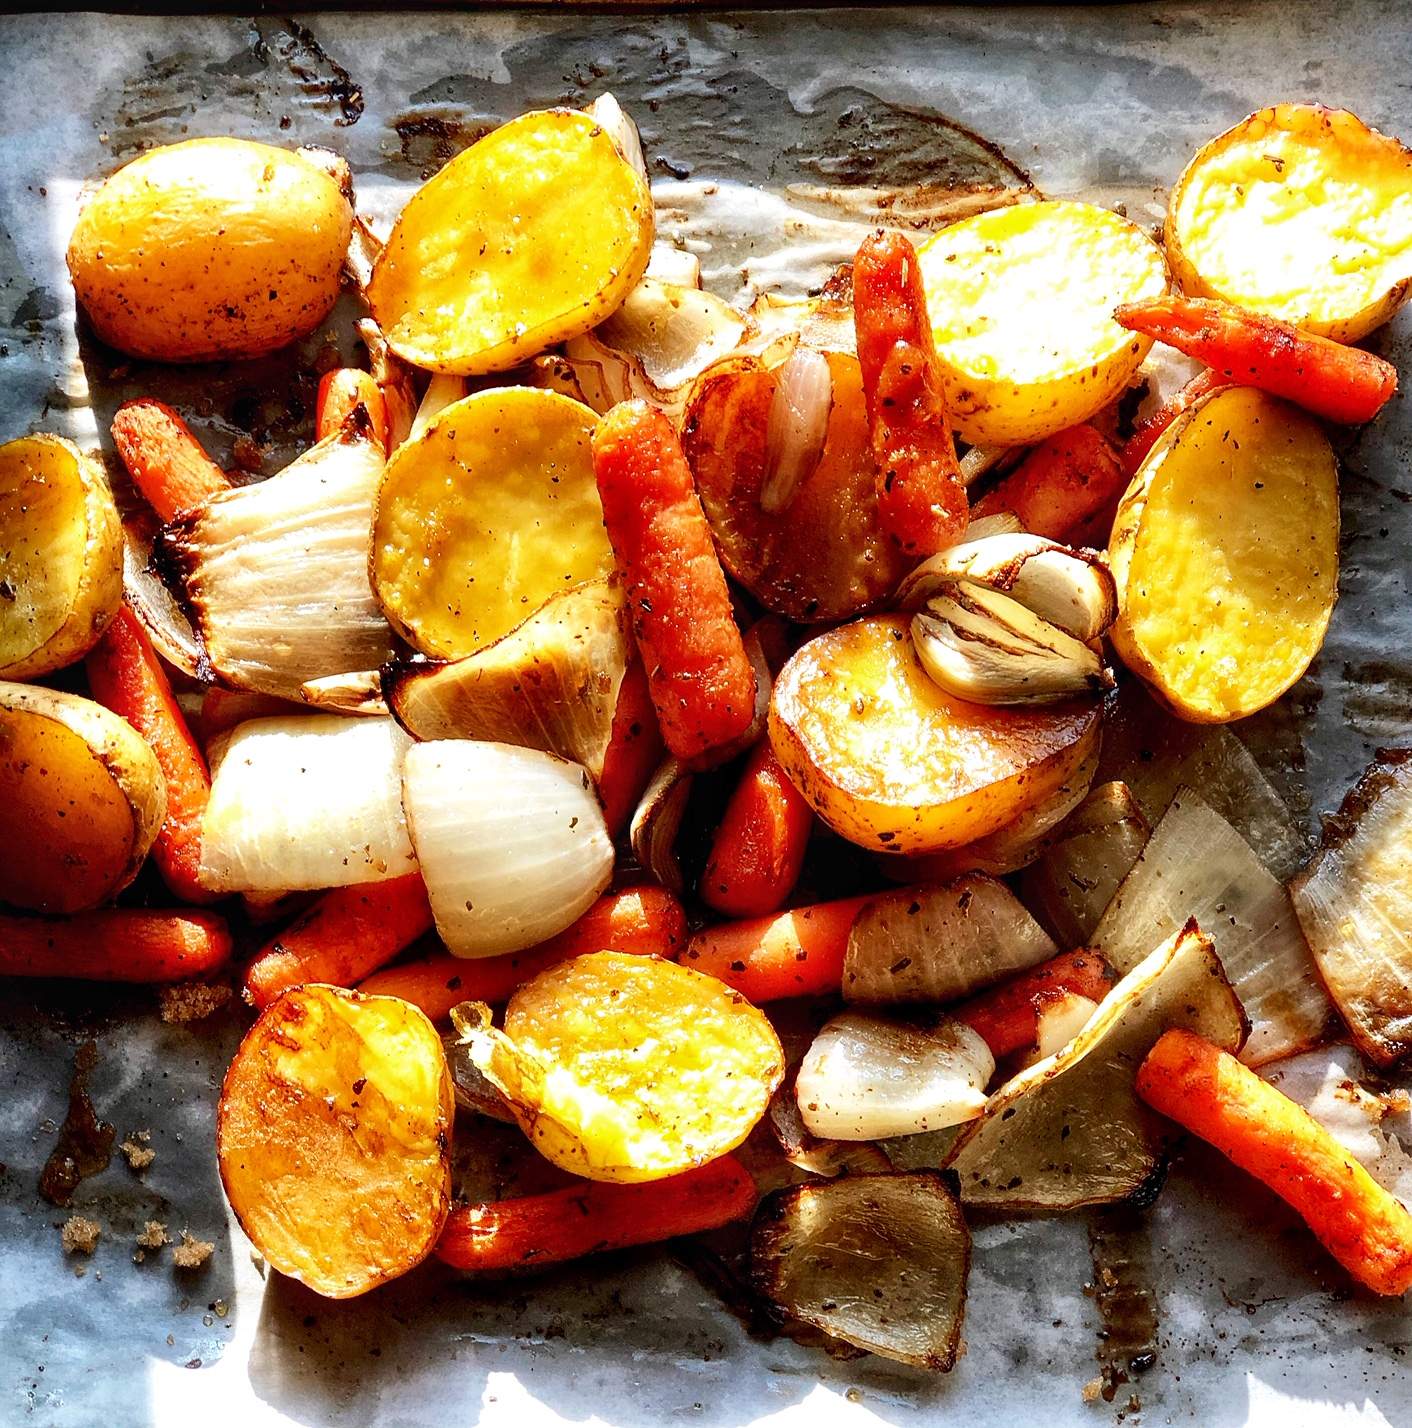 Roasted Potatoes, Onions, and Carrots with Brown Sugar and Balsamic Vinegar